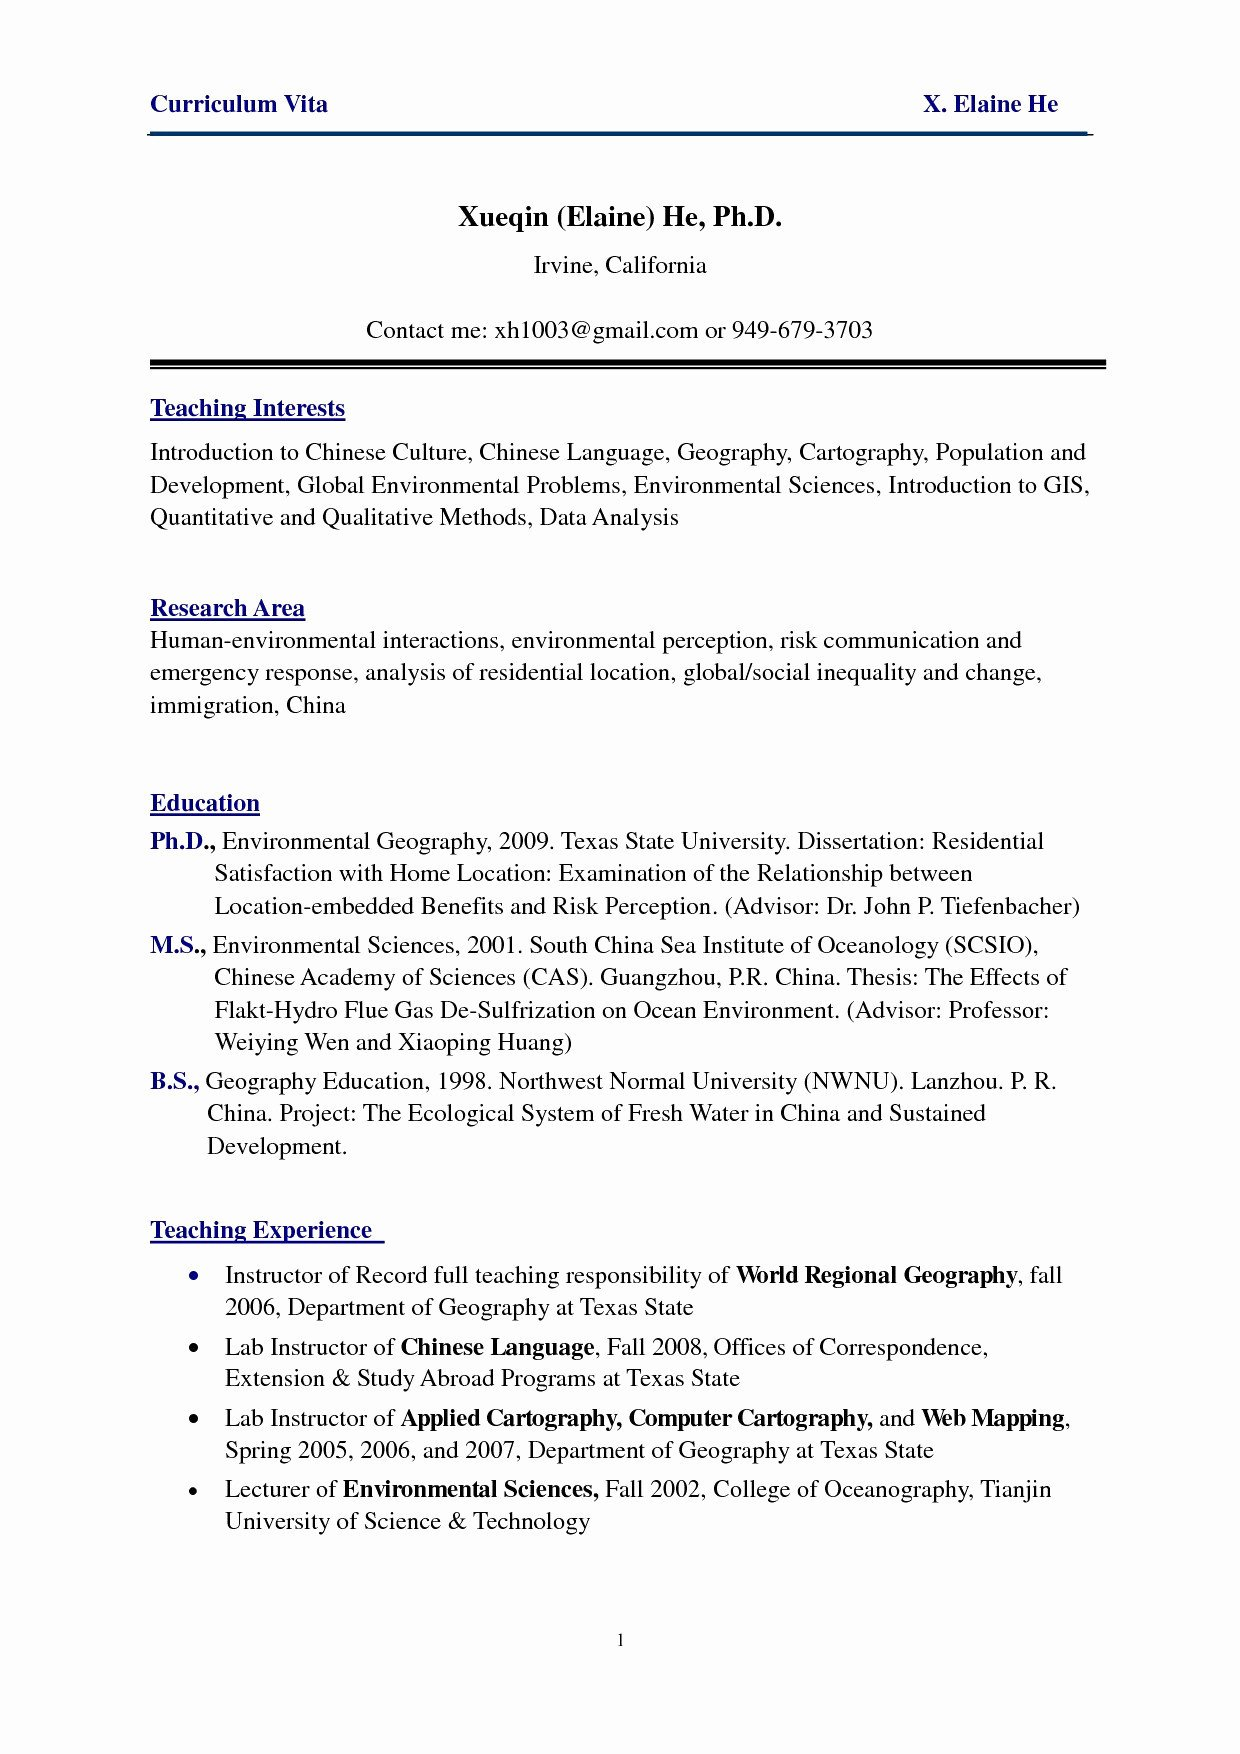 New Grad Nurse Resume New Grad Nursing Resume Unique Rn New Grad Resume Of New Grad Nursing Resume new grad nurse resume|wikiresume.com